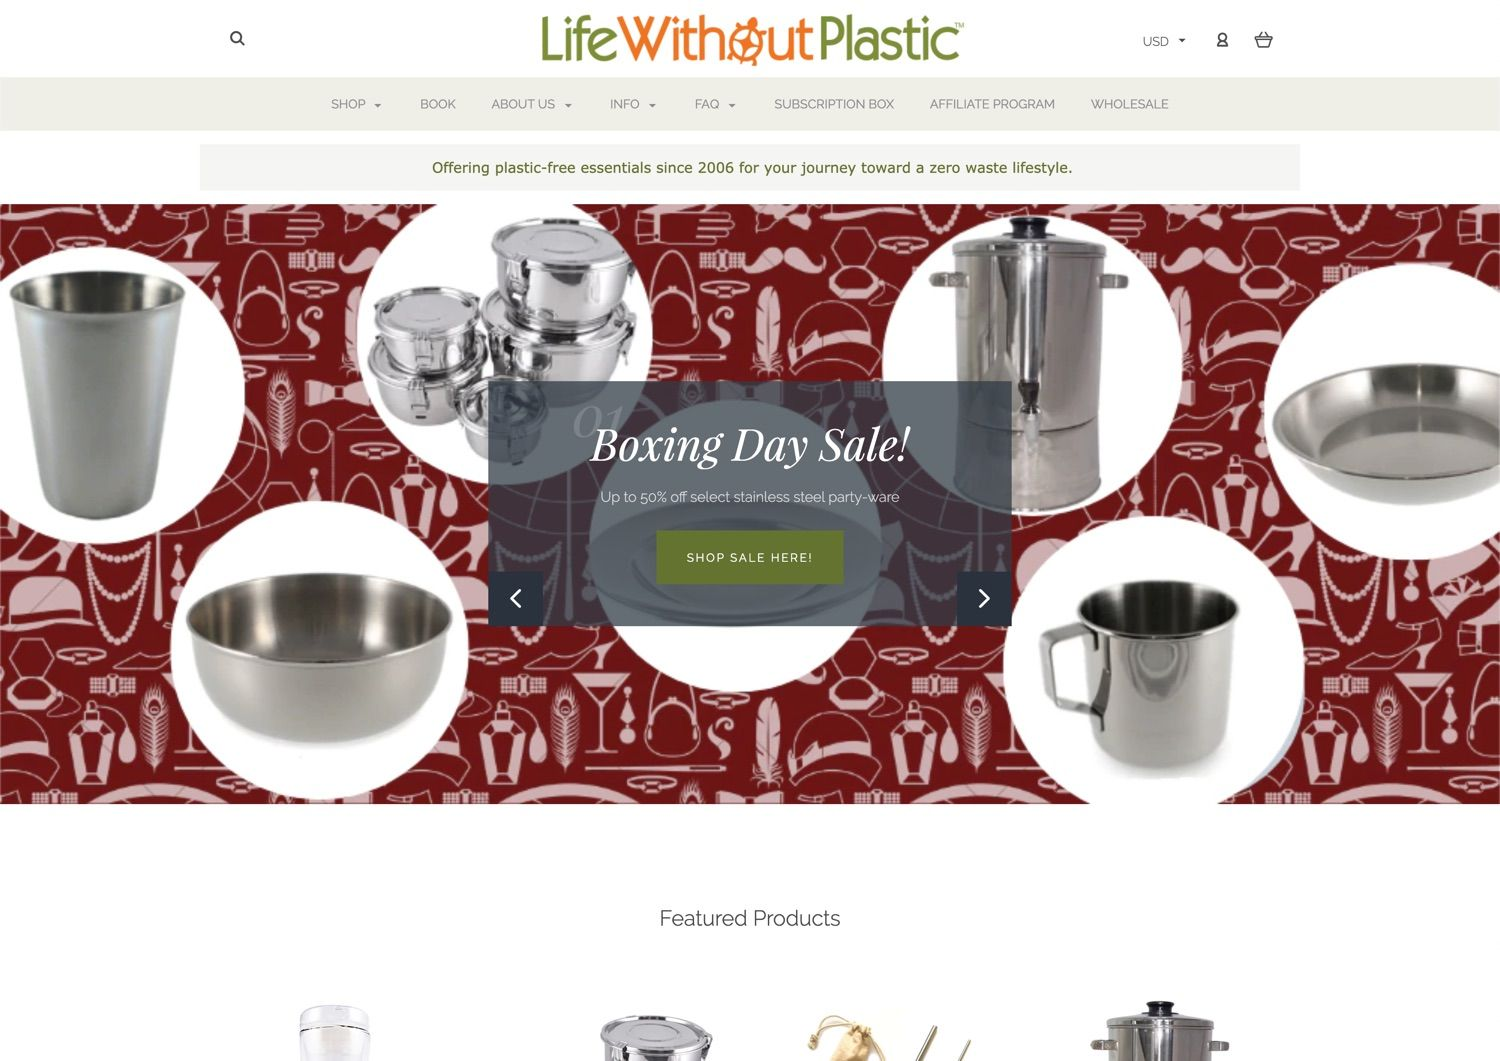 Life without plastic website